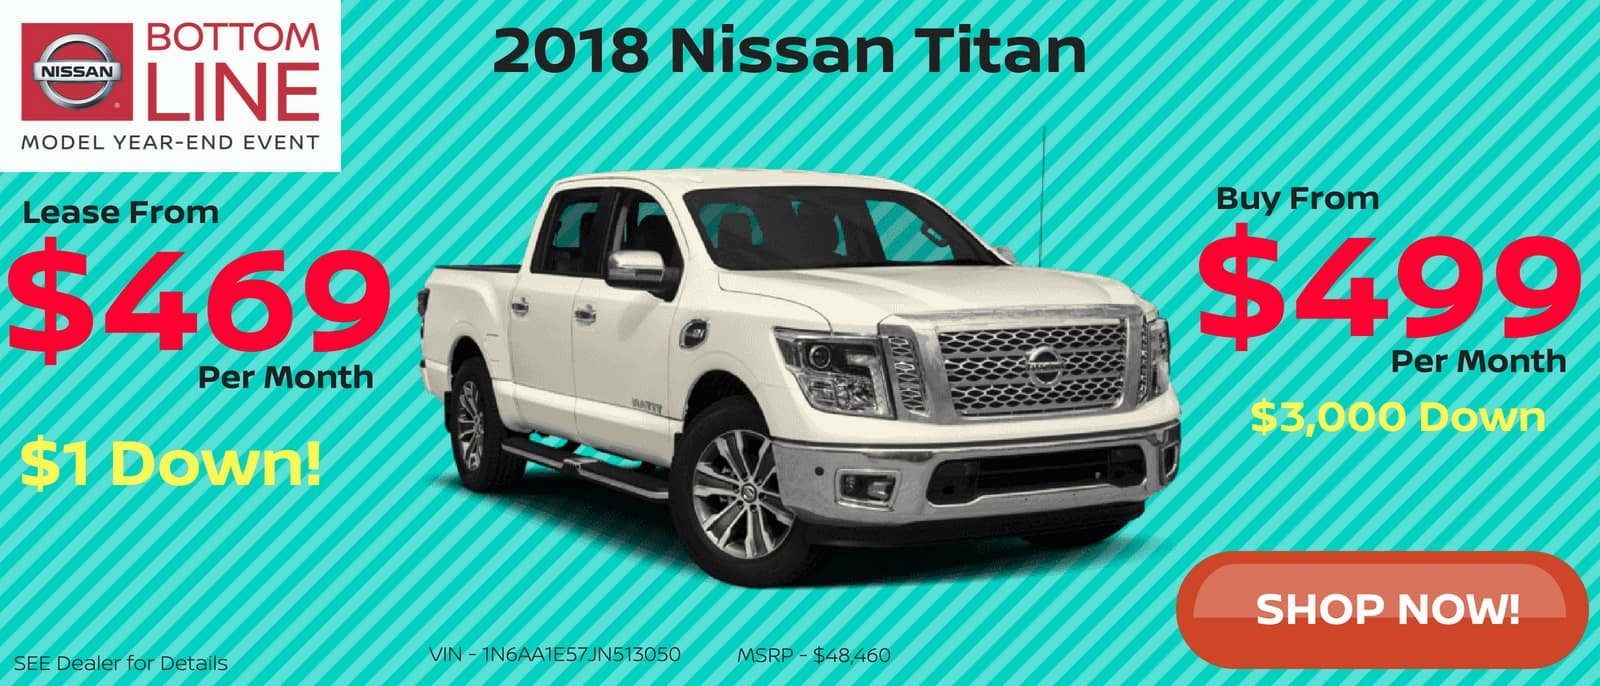 Nissan Titan for sale in st cloud